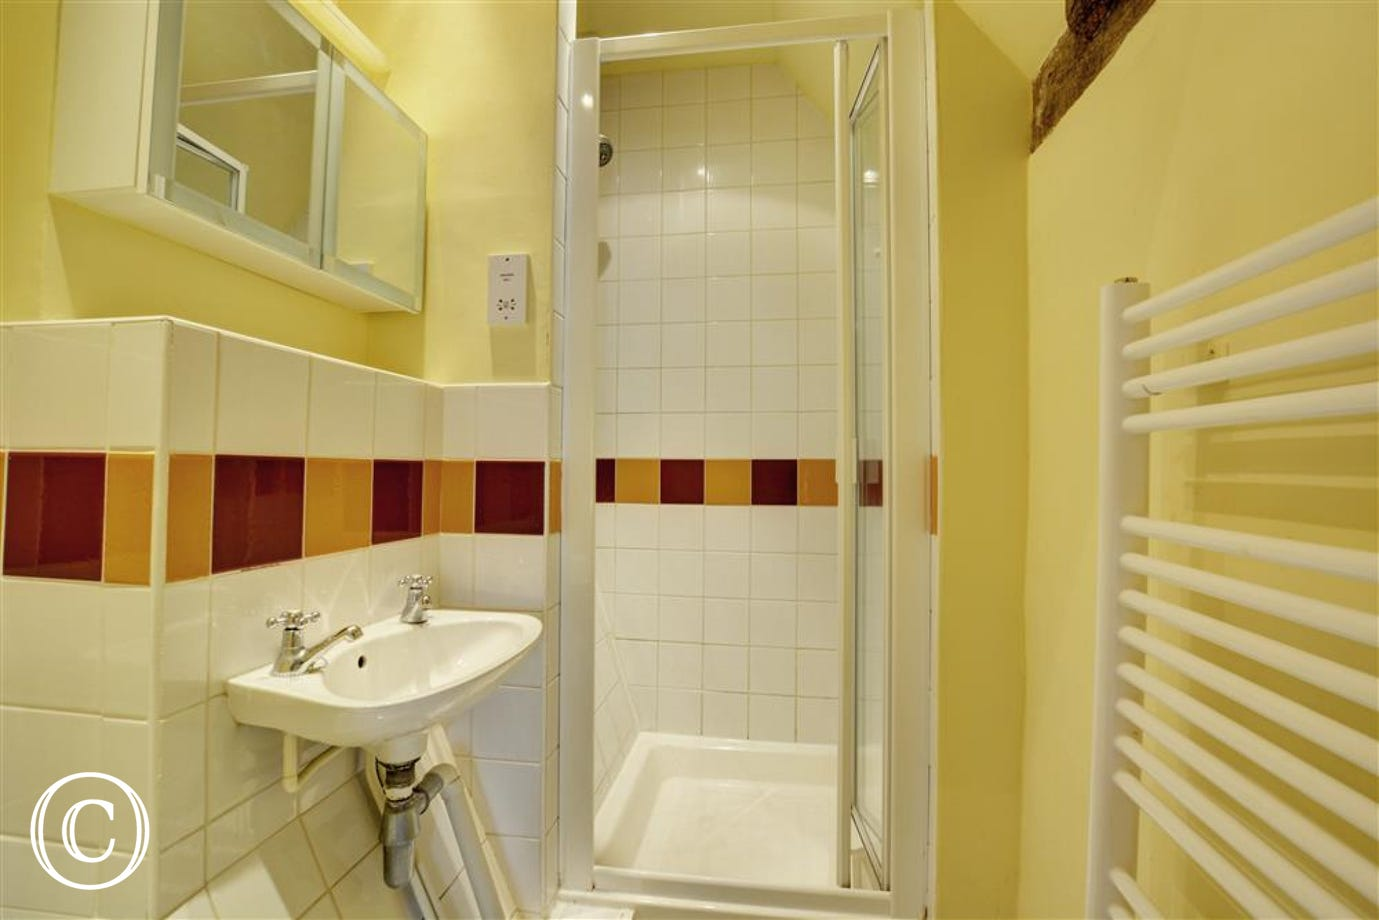 Ensuite shower room with shower cubicle, wash hand basin, and heated towel rail.